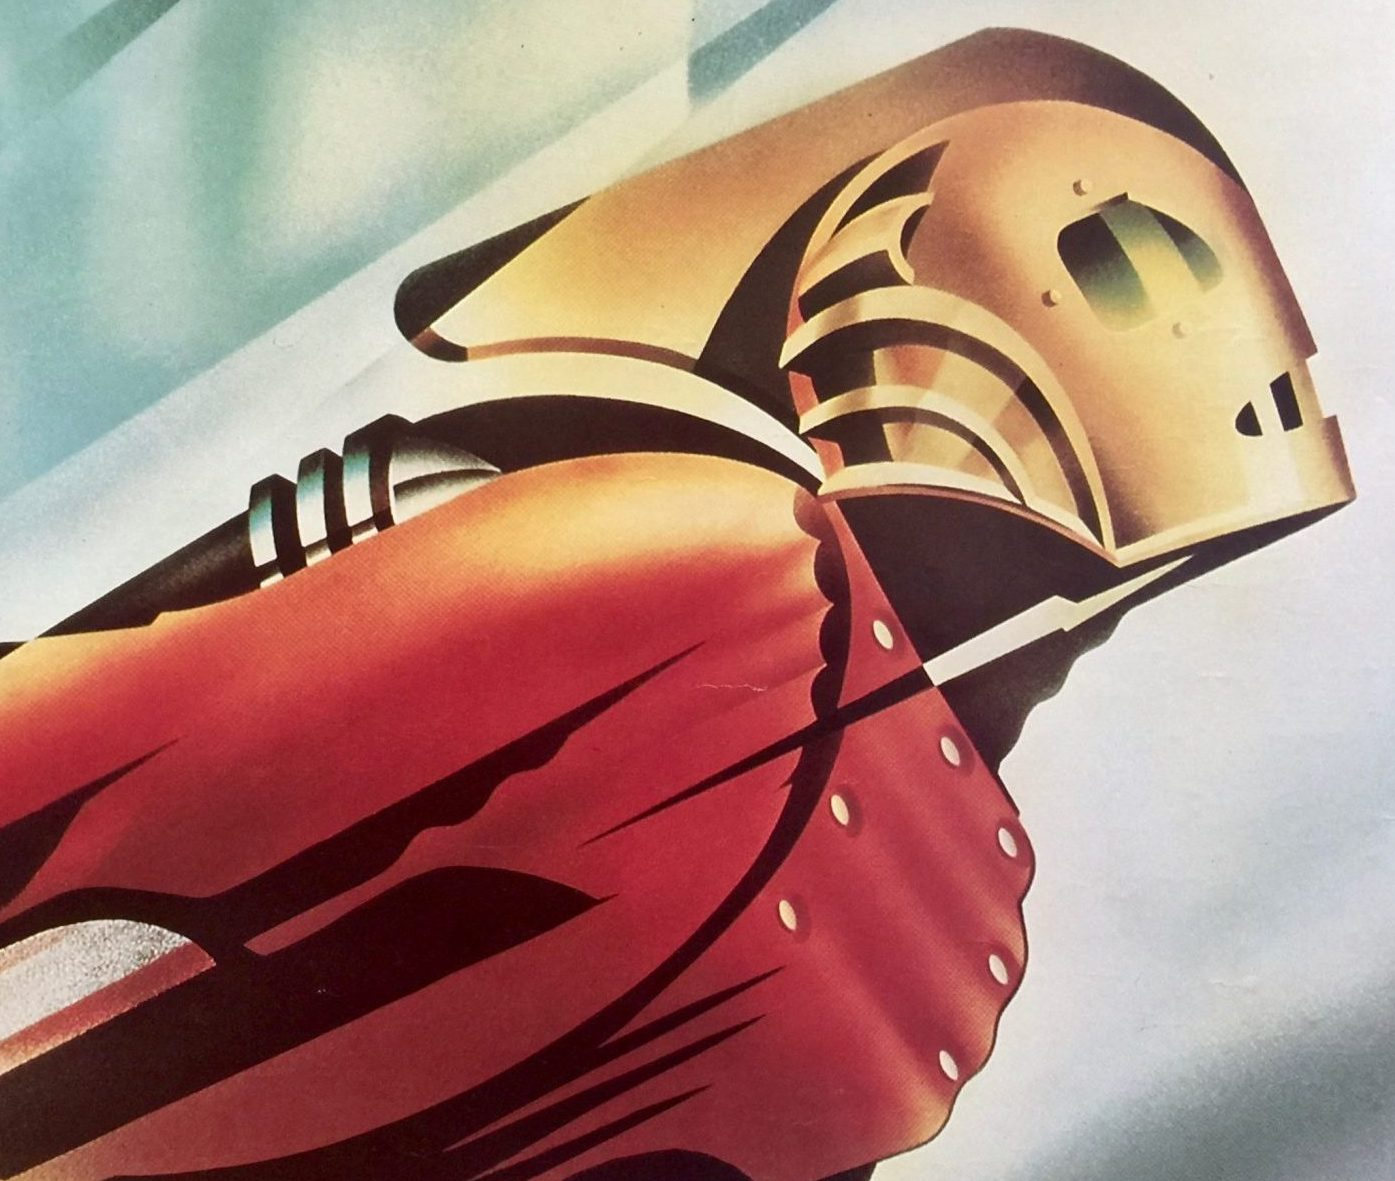 new years 35 e1625577225681 20 Things You Never Knew About High-Flying Comic Book Movie The Rocketeer